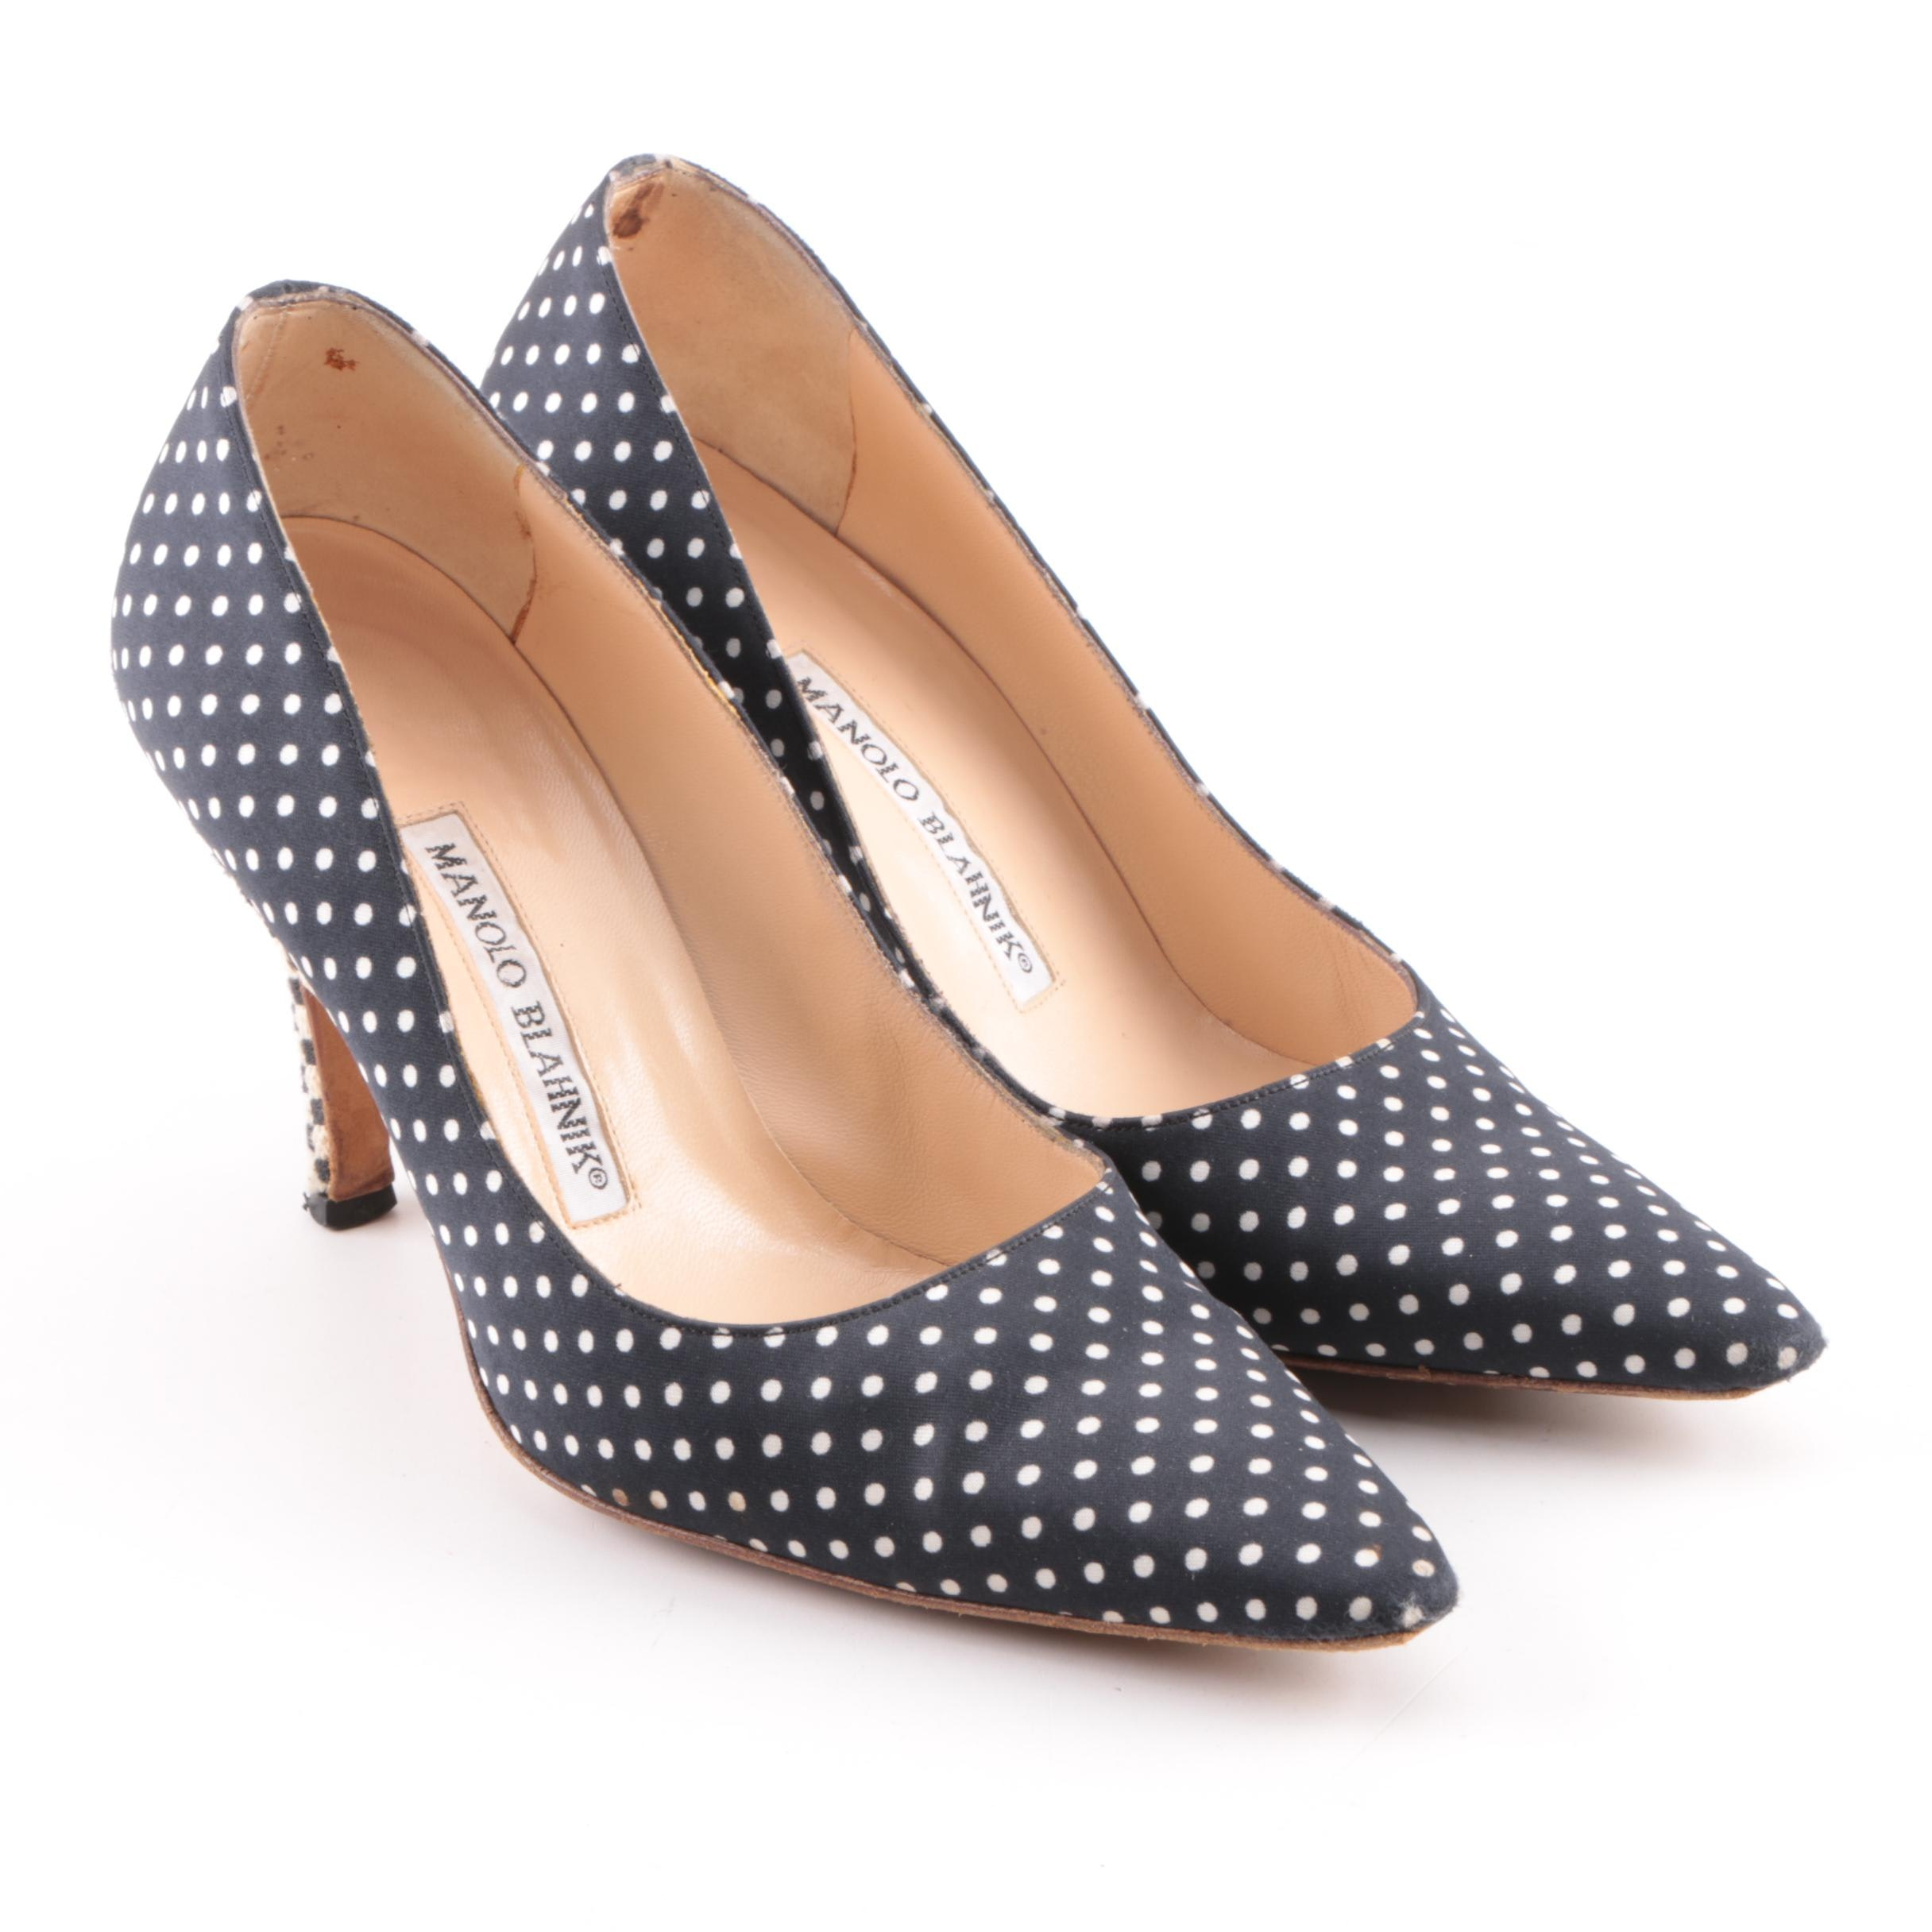 Manolo Blahnik Black and White Satin Polka Dot Pumps